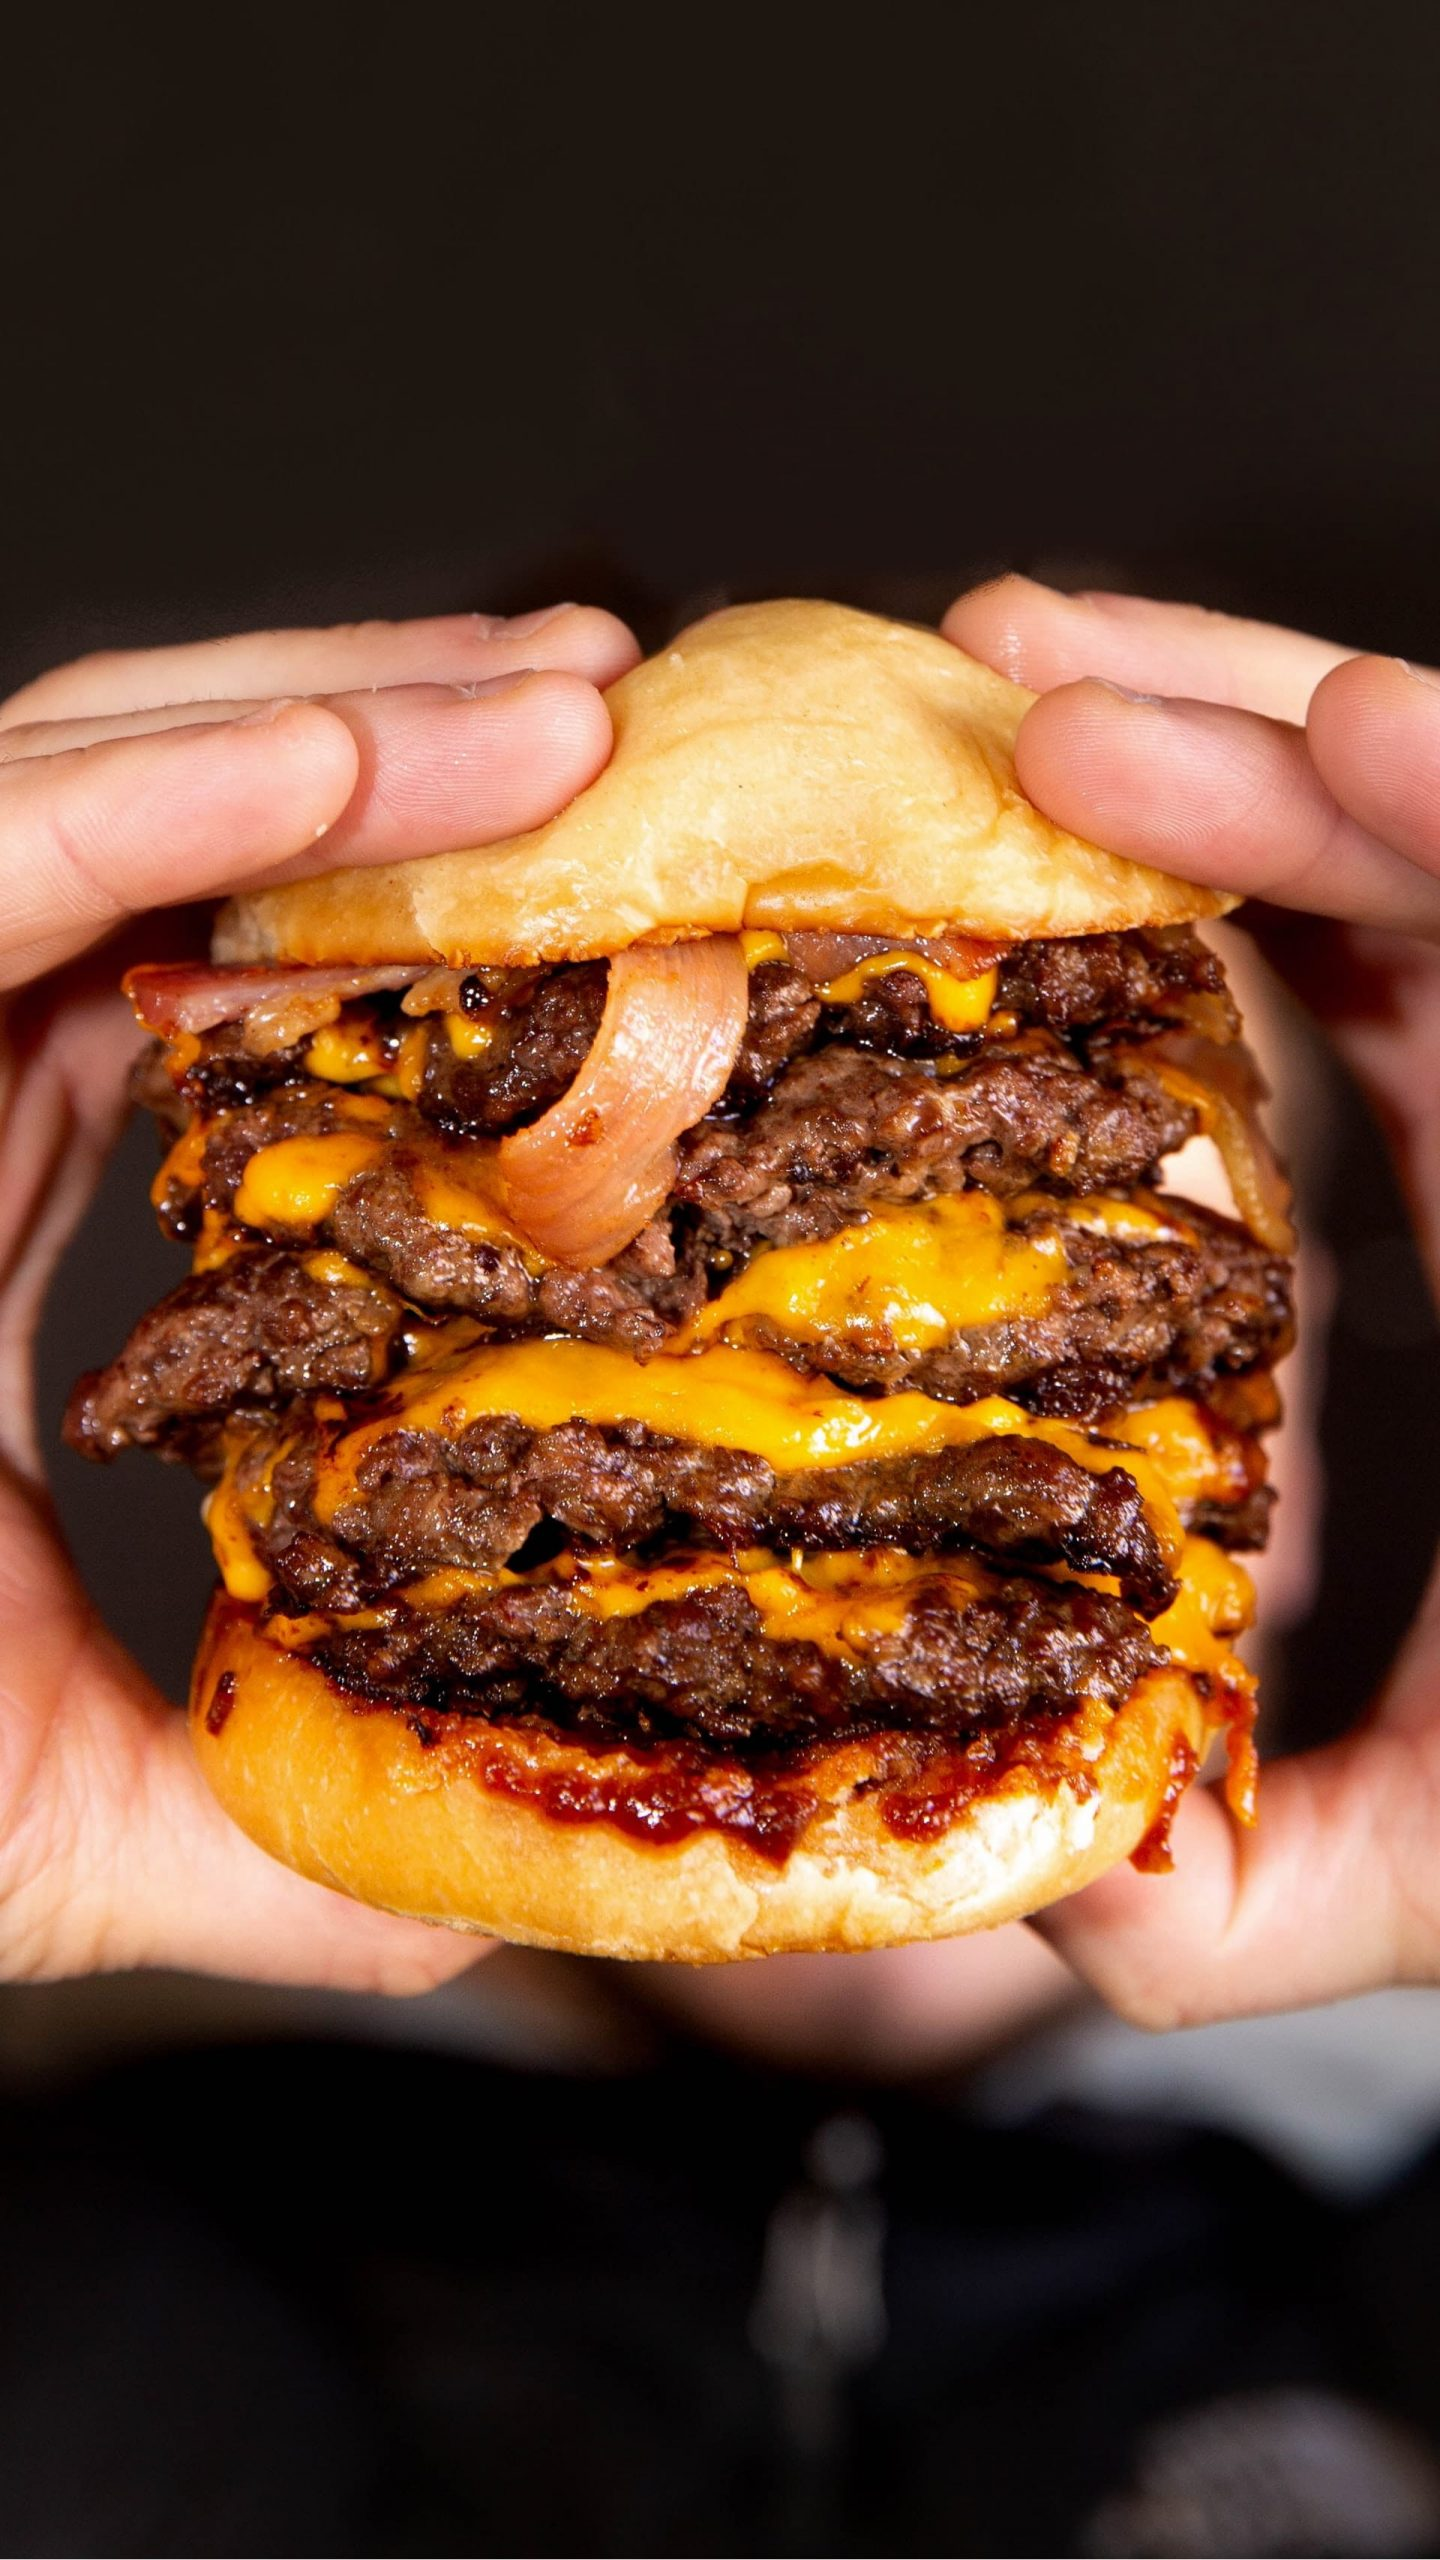 Juiciest Burgers in Liverpool You'll Ever Eat